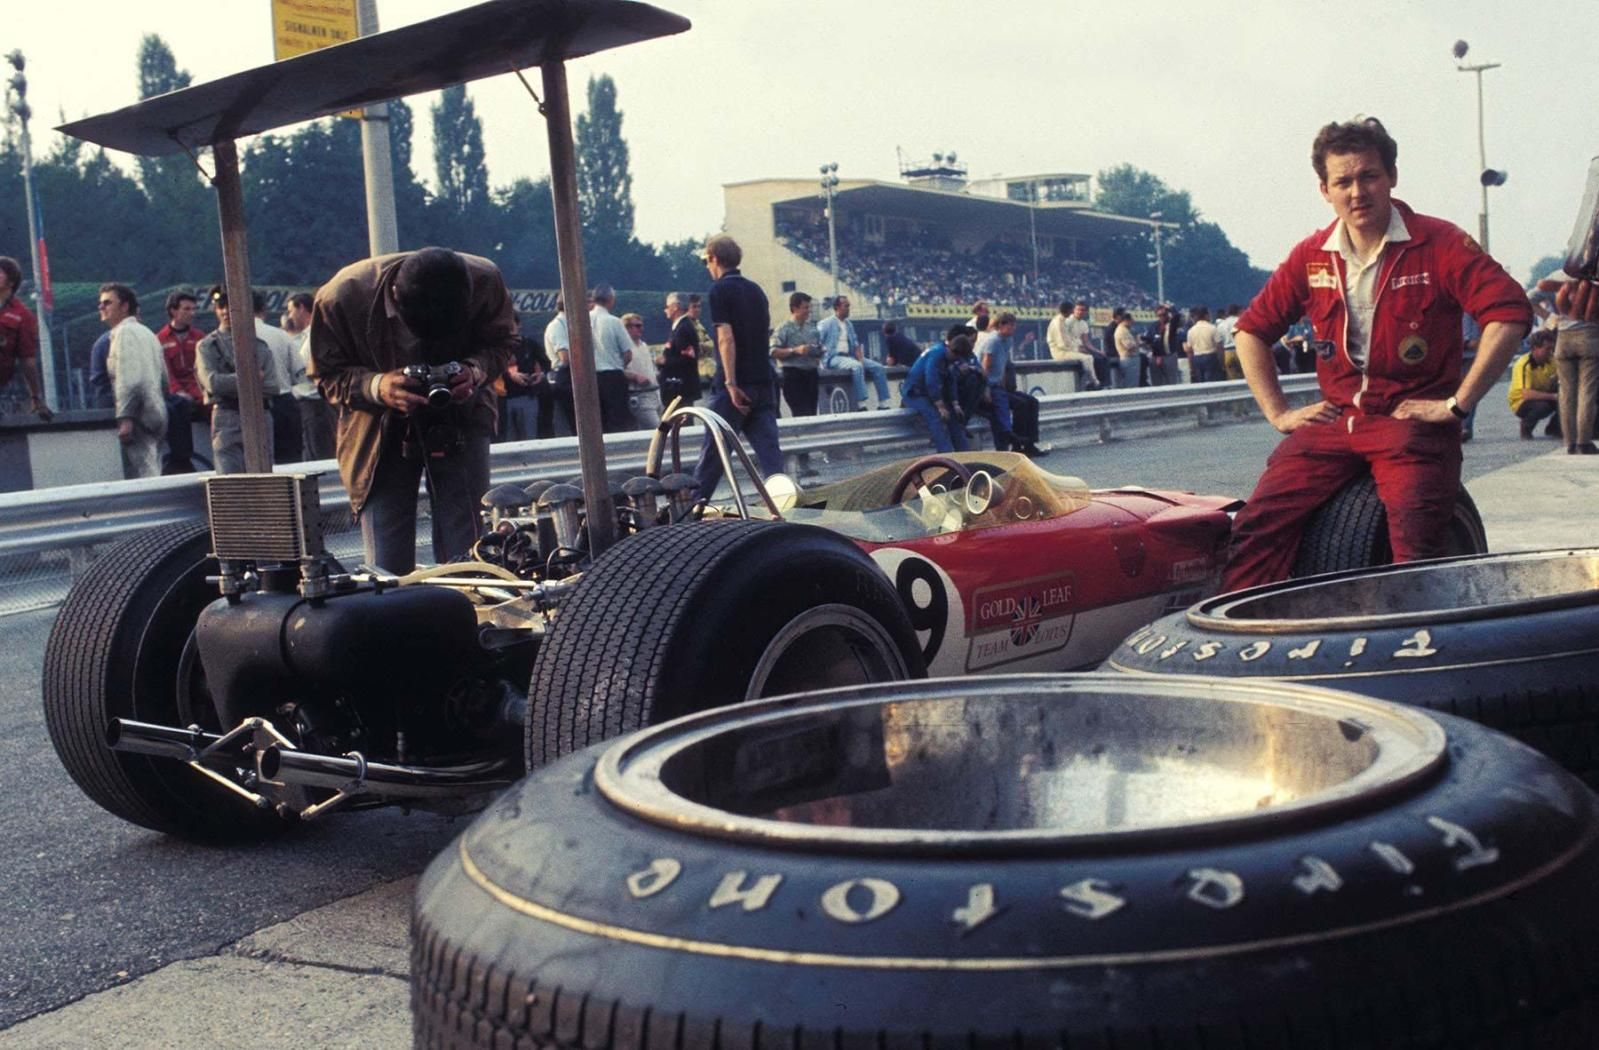 Engineer Eddie Dennis Rests On The Wheel Of Jackie Oliver S Lotus 49b While It Sits In The Pits Monza 1968 1599x1050 X Racing Indy Cars Italian Grand Prix